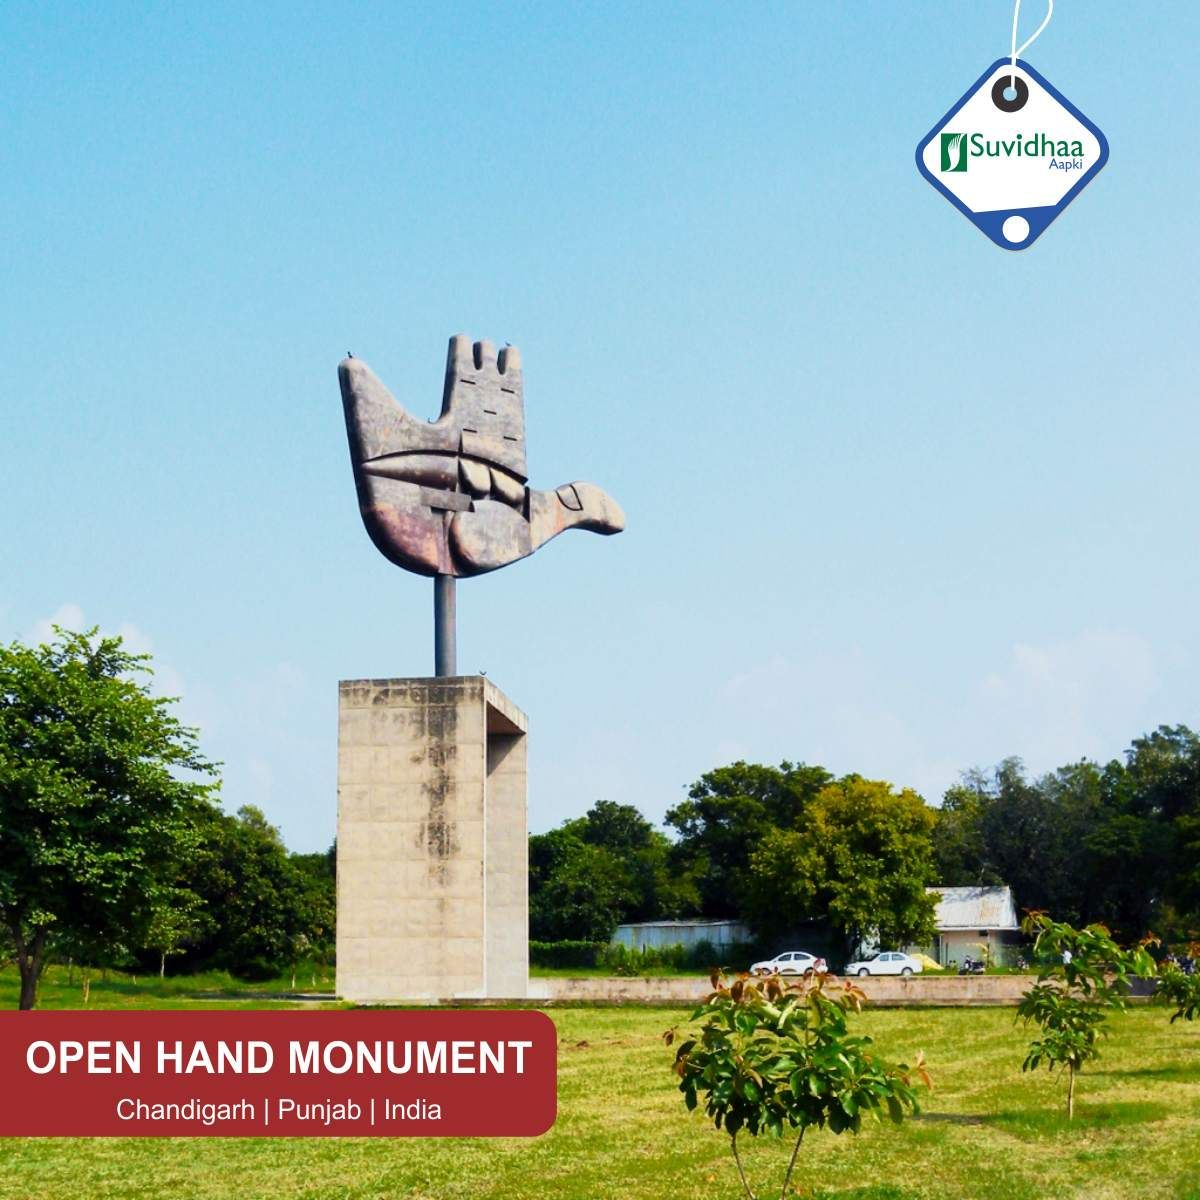 The Open Hand Monument Is A Symbolic Structure Located In The Indian